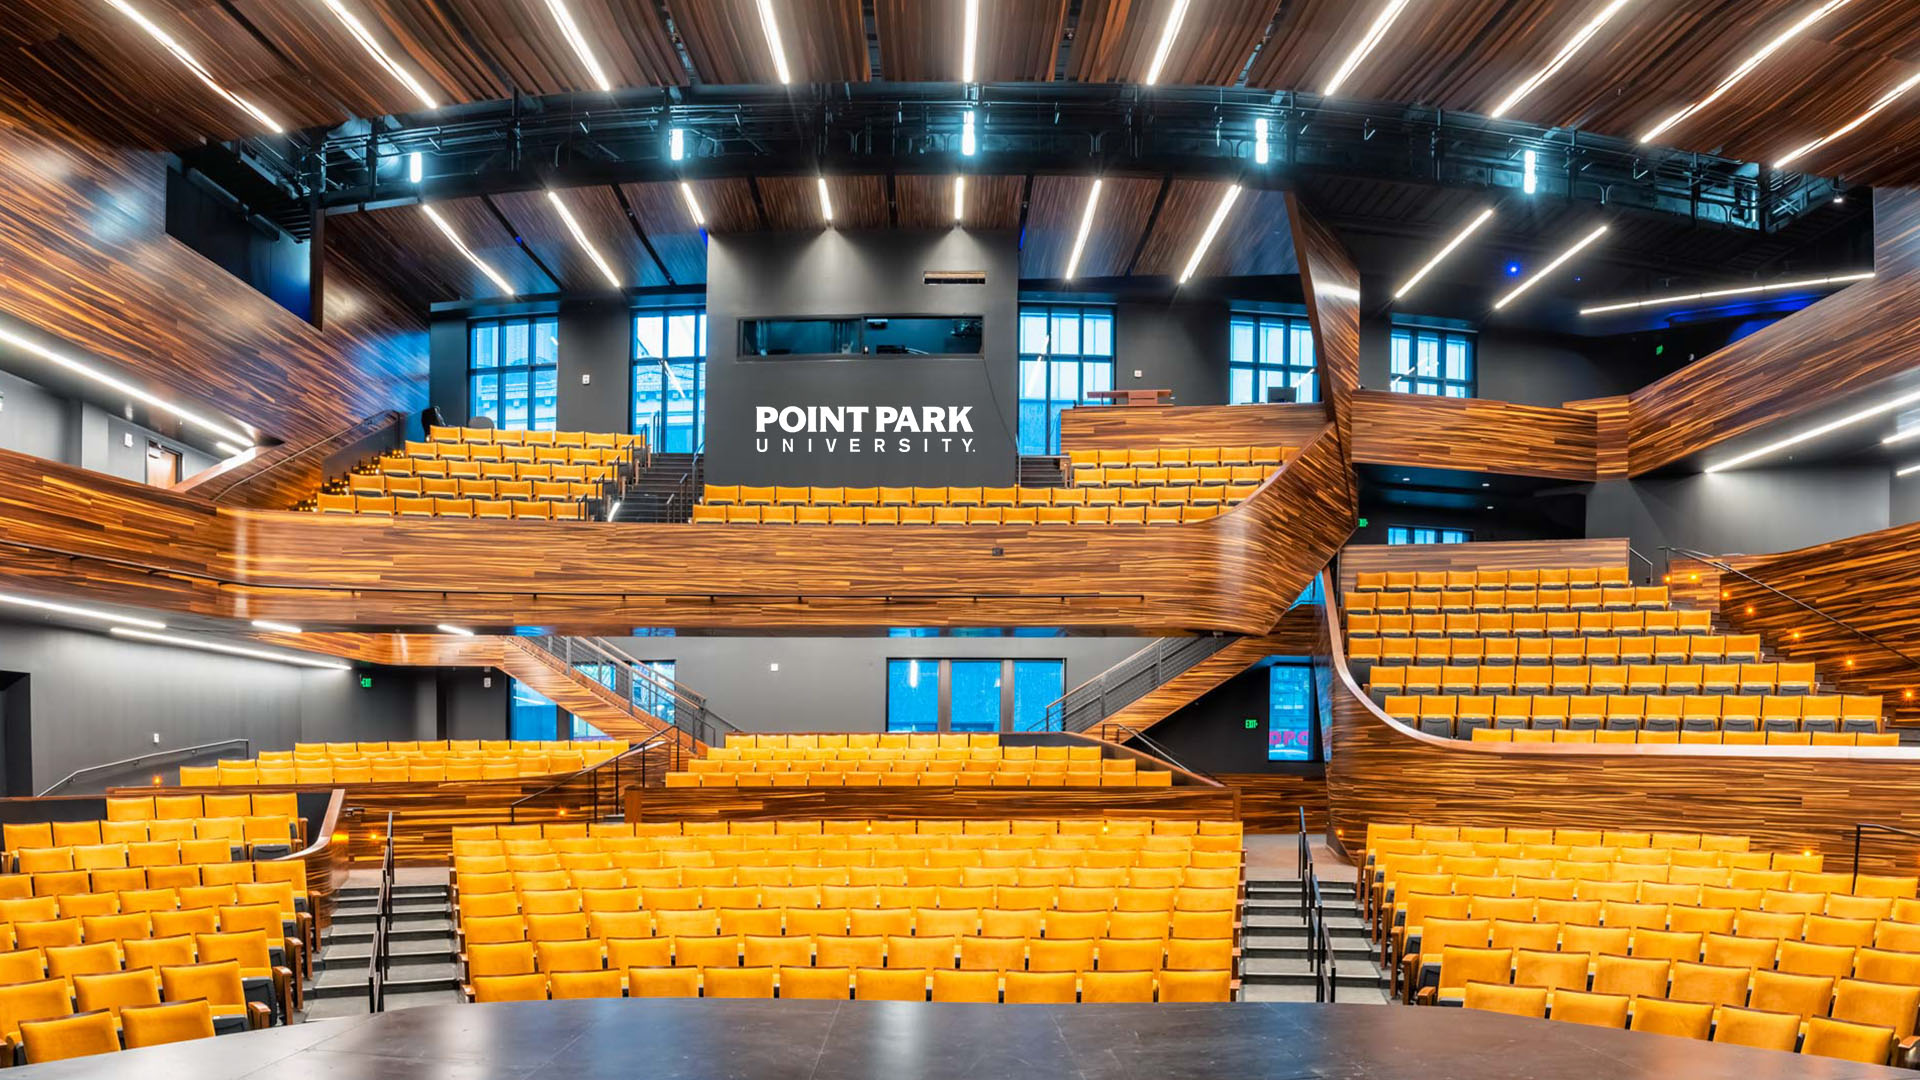 Point Park University 7 - PNC Theatre